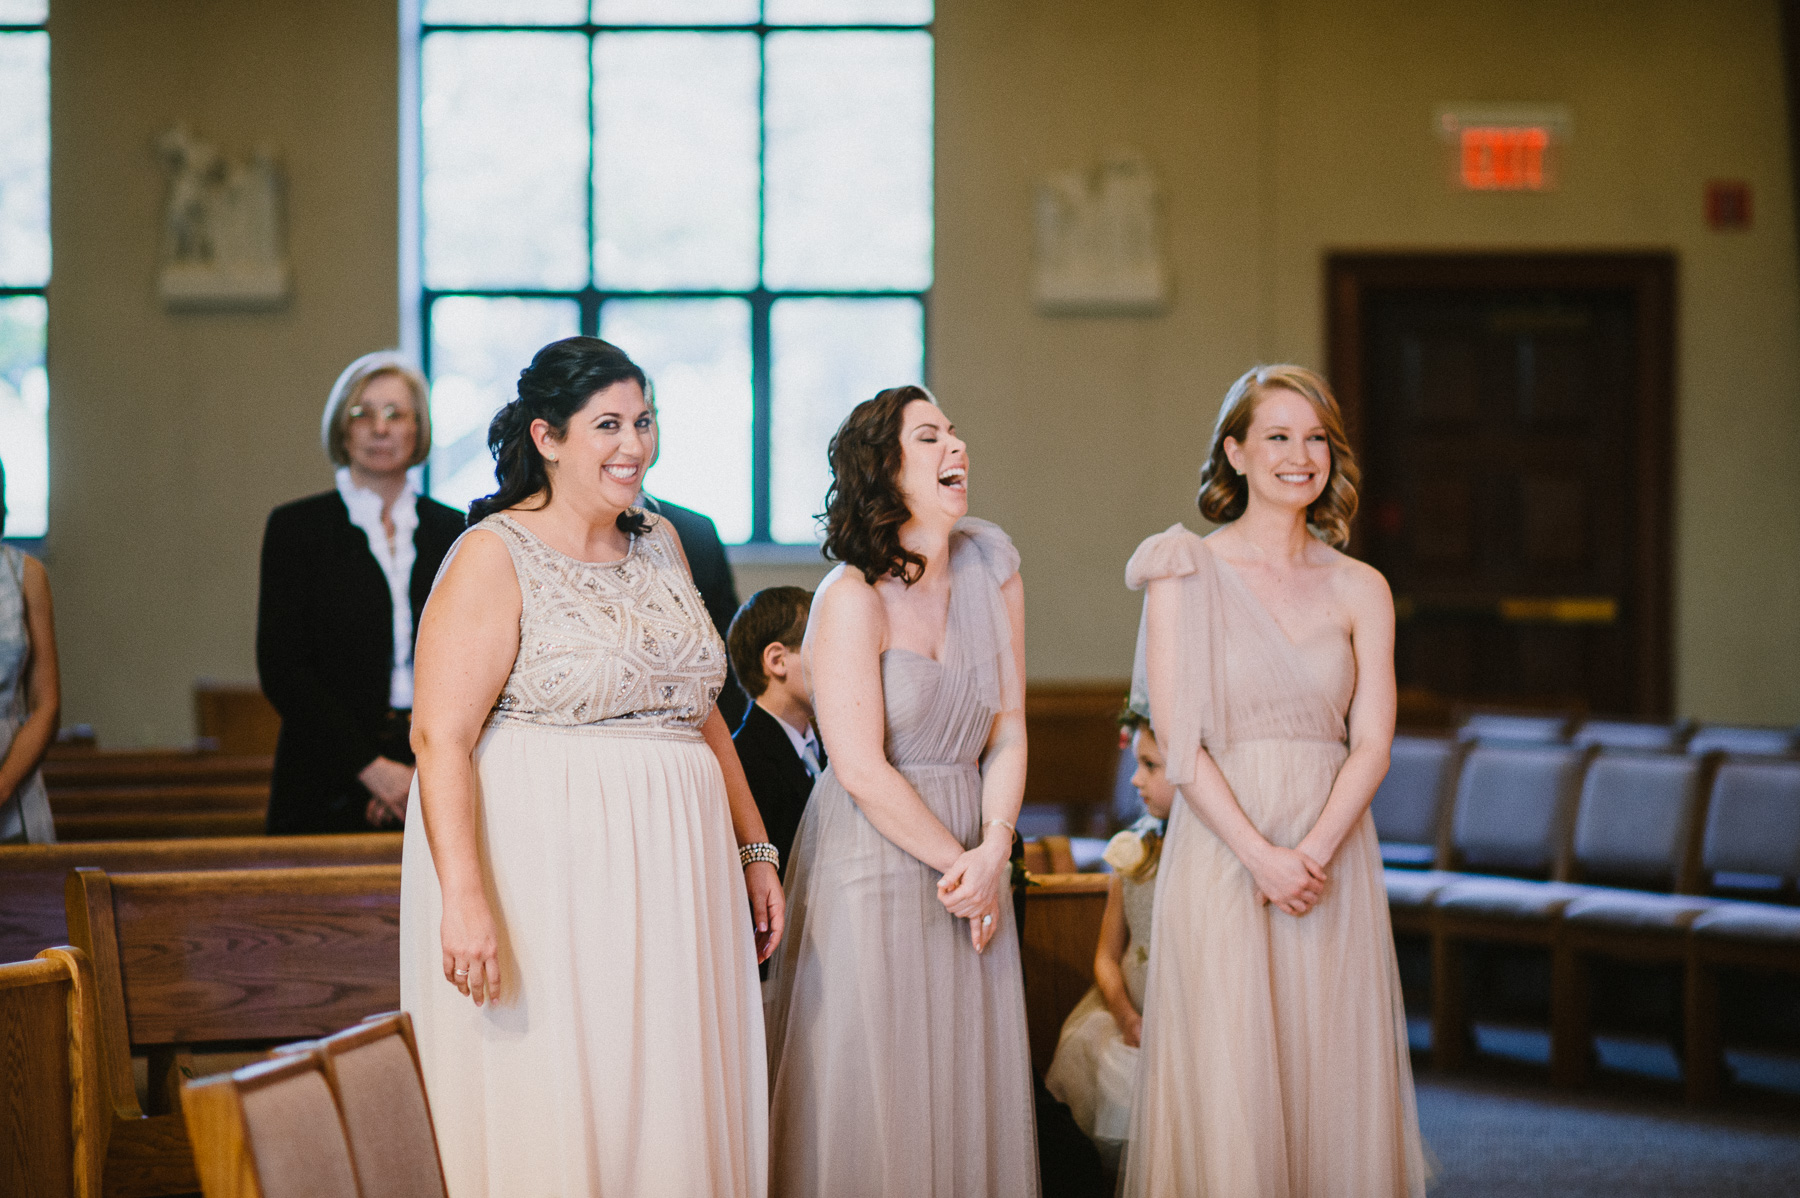 The_Carriage_House_at_Rockwood_Park_wedding_photo065.jpg